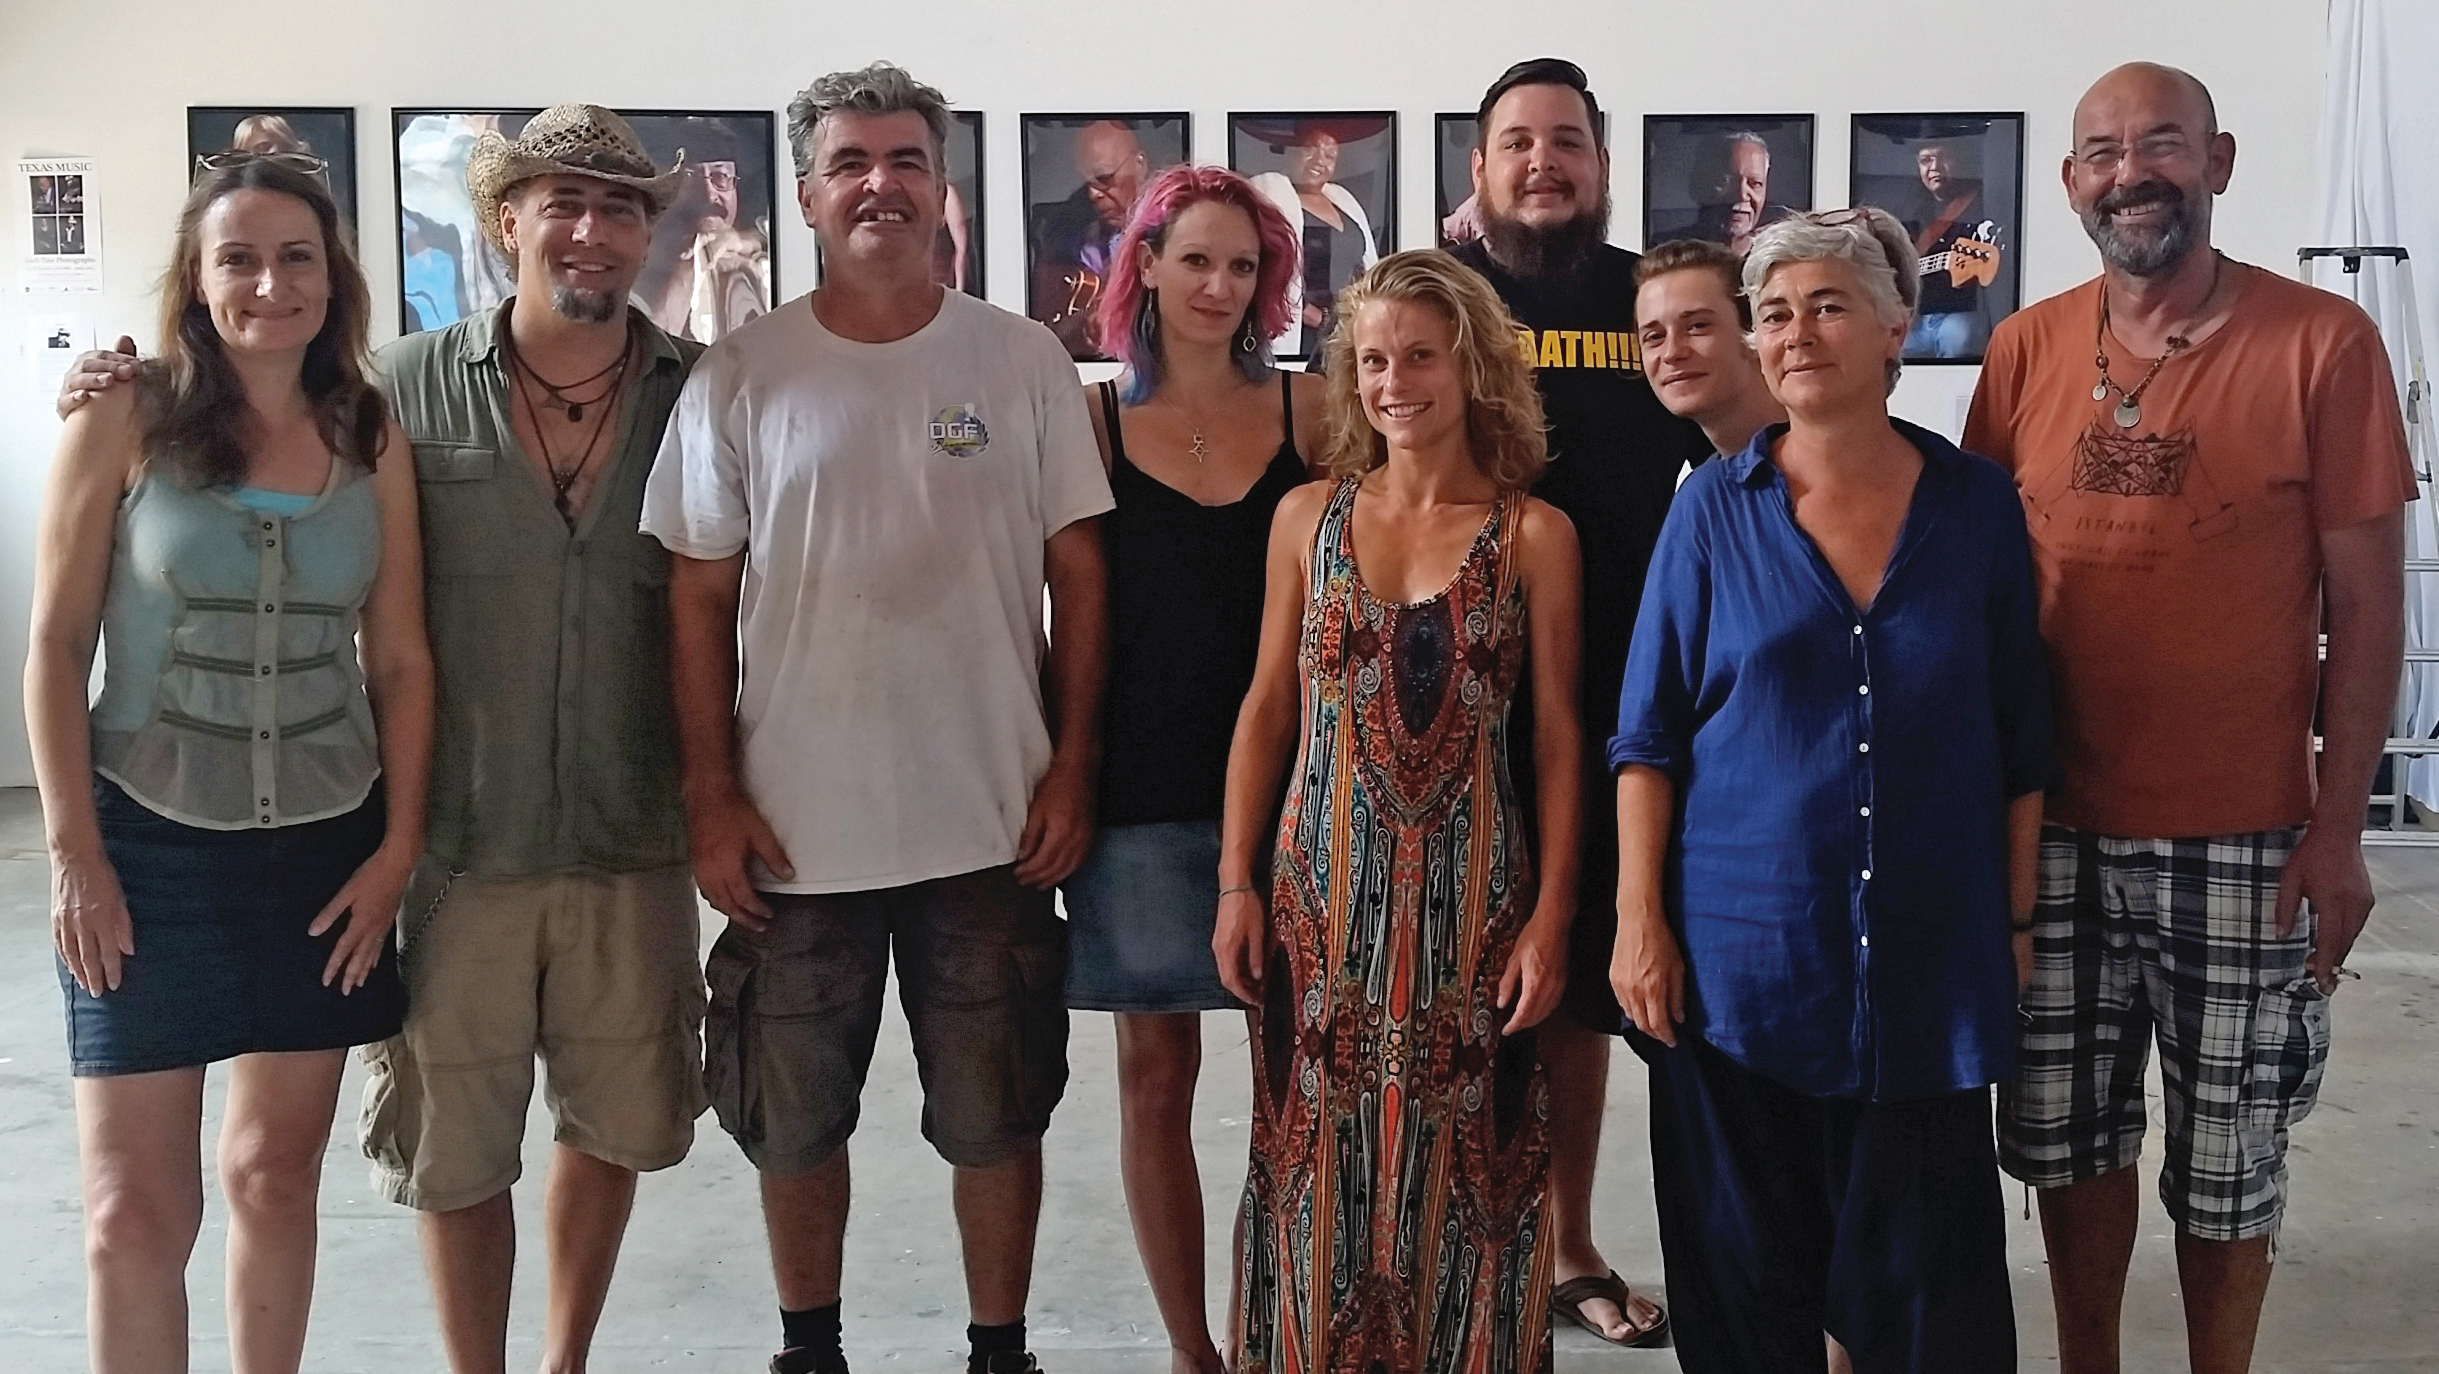 The team at Le K Gallery and performance space hosted Zach Tate's photo exhibit and music concert. Zach Tate and Anthony Puskus performed on the second night of the photo exhibition.  L-R: Photo show coordinator, Stephanie Gellee, Zach Tate, Daniel Descat, Magali Angleys, Wendy Mavet, Anthony Puskus, Clemont Dussol, Isabelle Lavernha (owner), Gilles Deverchere (Owner).